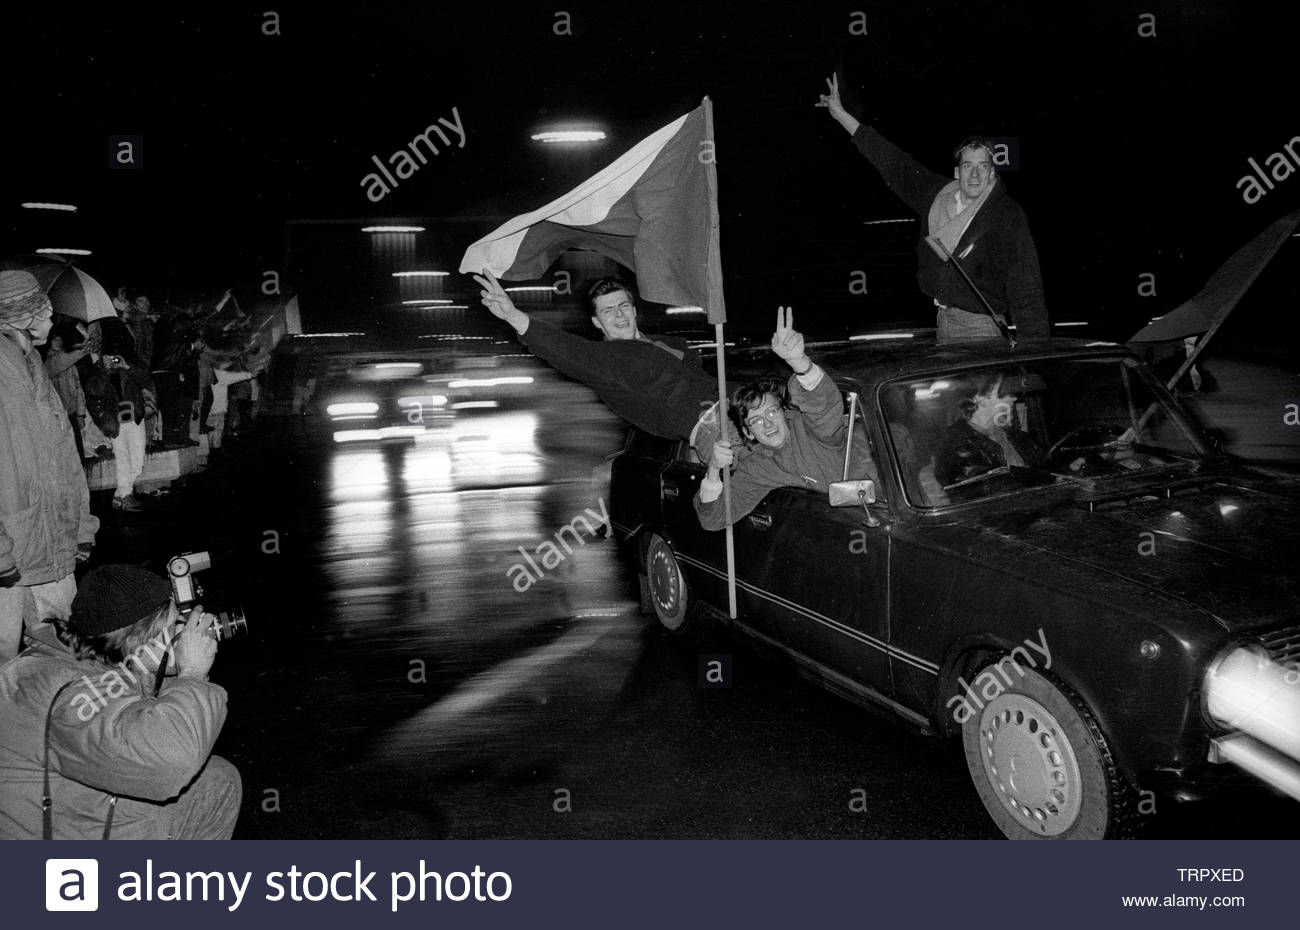 Czechoslovakia, Prague,1989 during the Velvet Revolution, the fall of communism in Eastern Europe. Celebrating the fall of the communist government by driving around Wenceslas Square showing the Czech flag. COPYRIGHT PHOTOGRAPH BY BRIAN HARRIS  © 07808-579804 Stock Photo